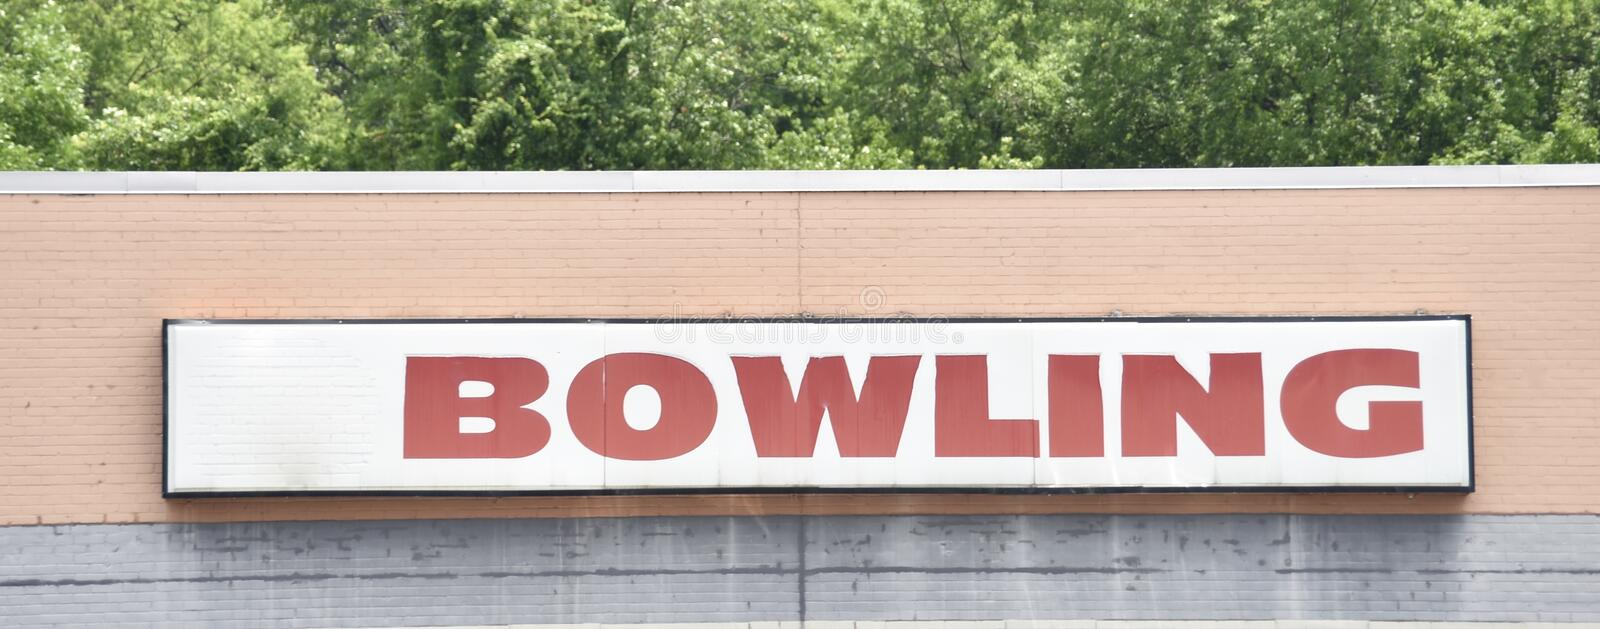 Bowling Lanes and Arcade Center. Bowling is a target sport and recreational activity in which a player rolls or throws a bowling ball toward pins in pin bowling royalty free stock photo